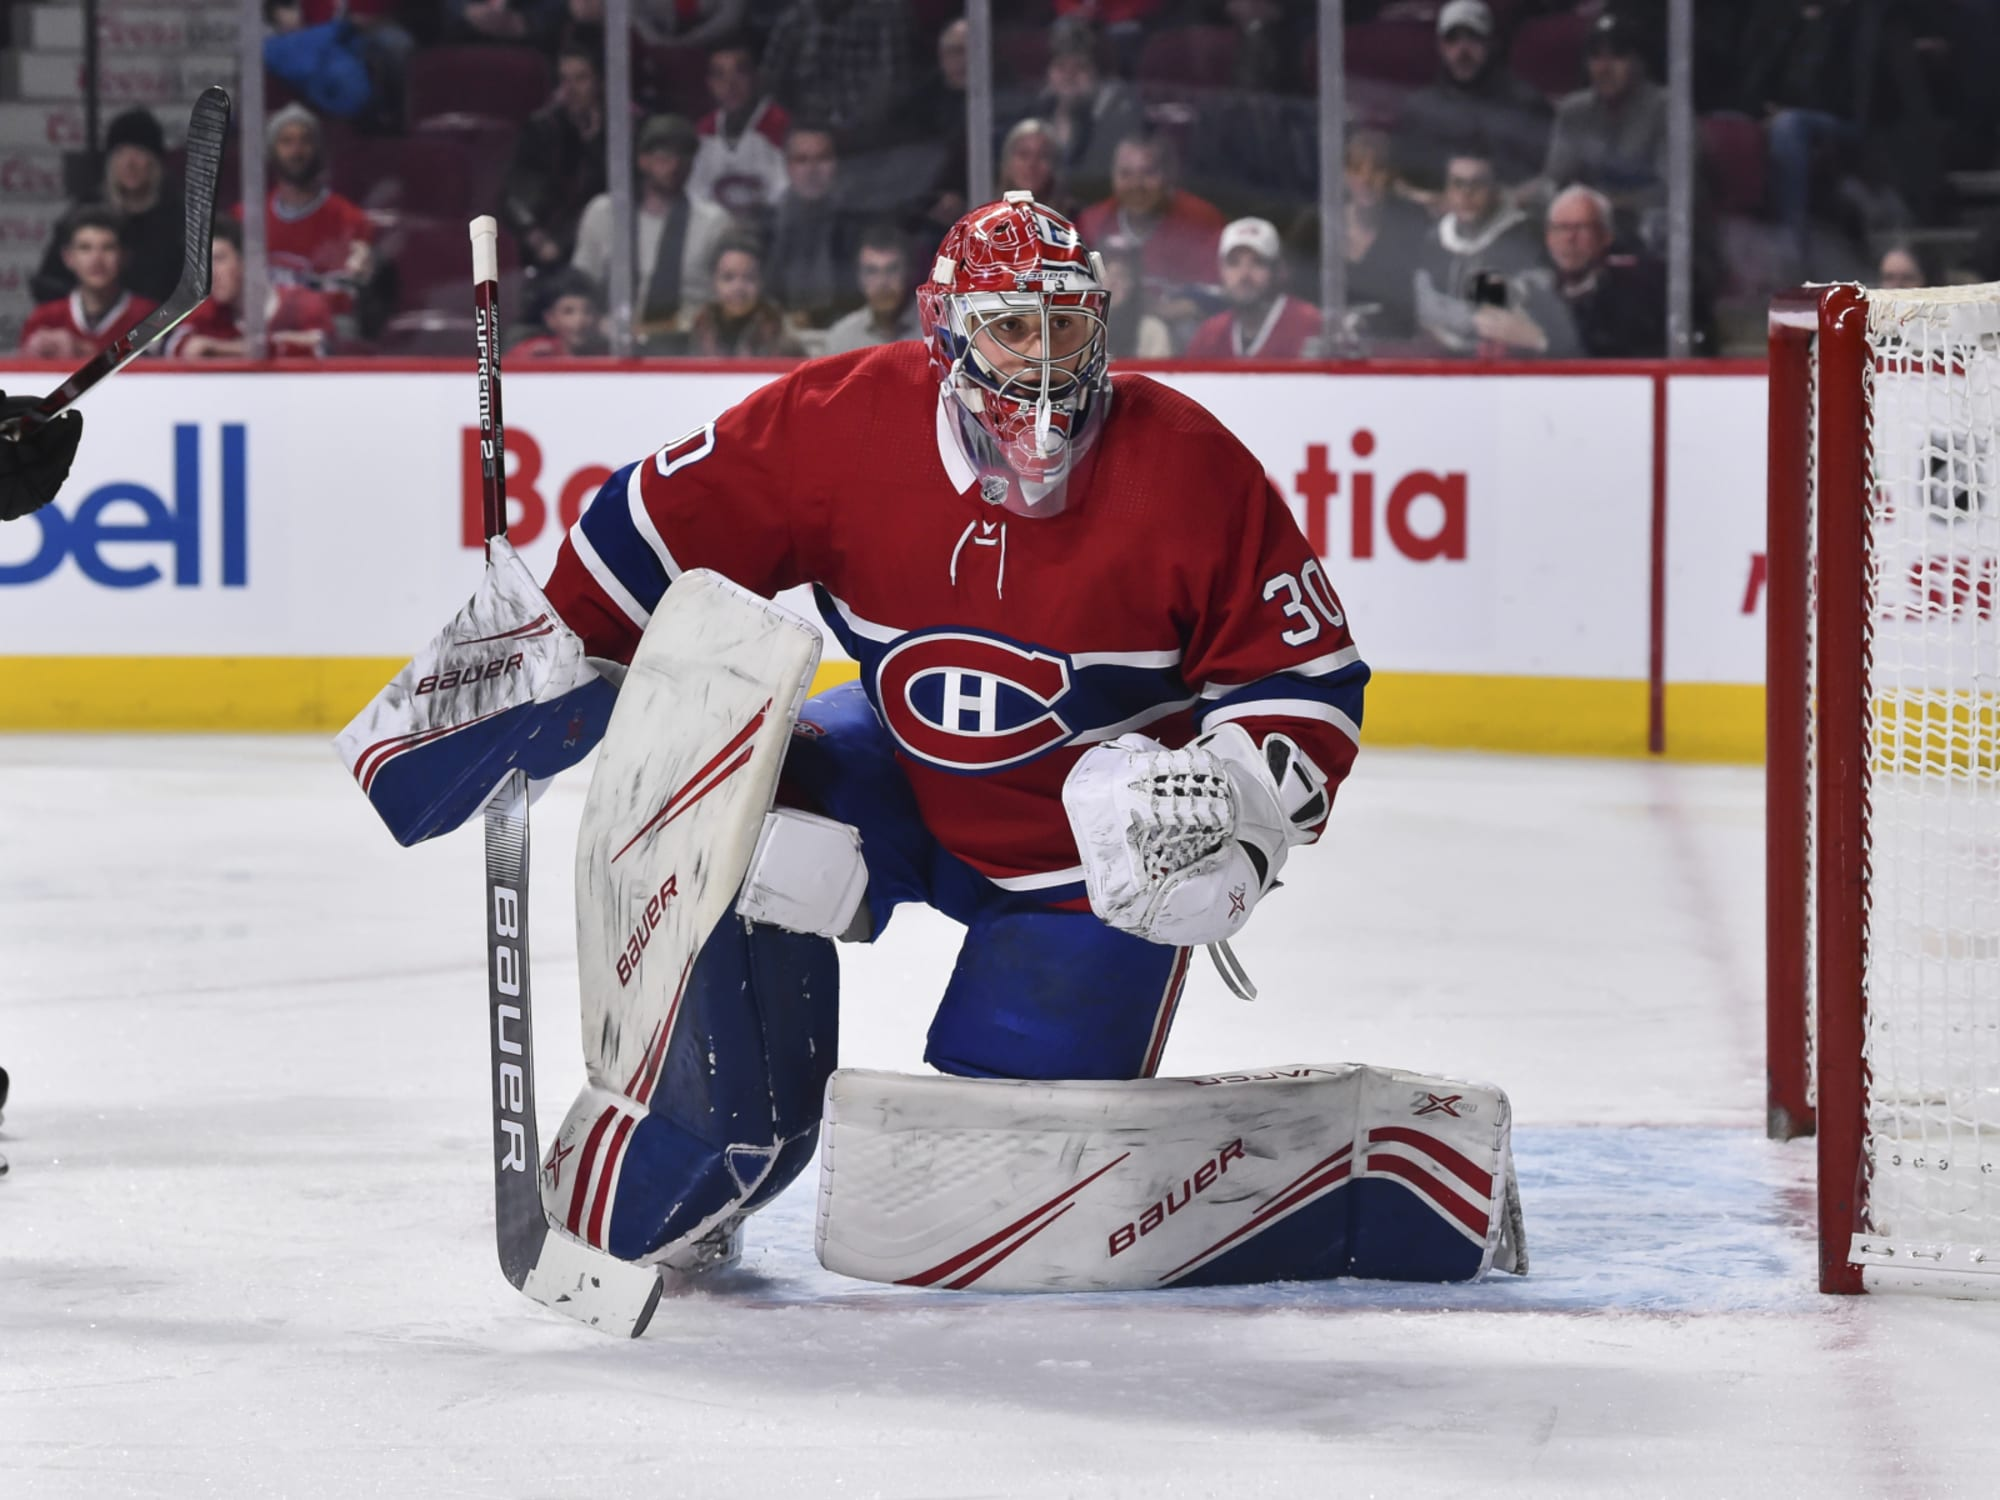 Montreal Canadiens: Why Cayden Primeau, Cole Caufield Could Be Rushed To NHL